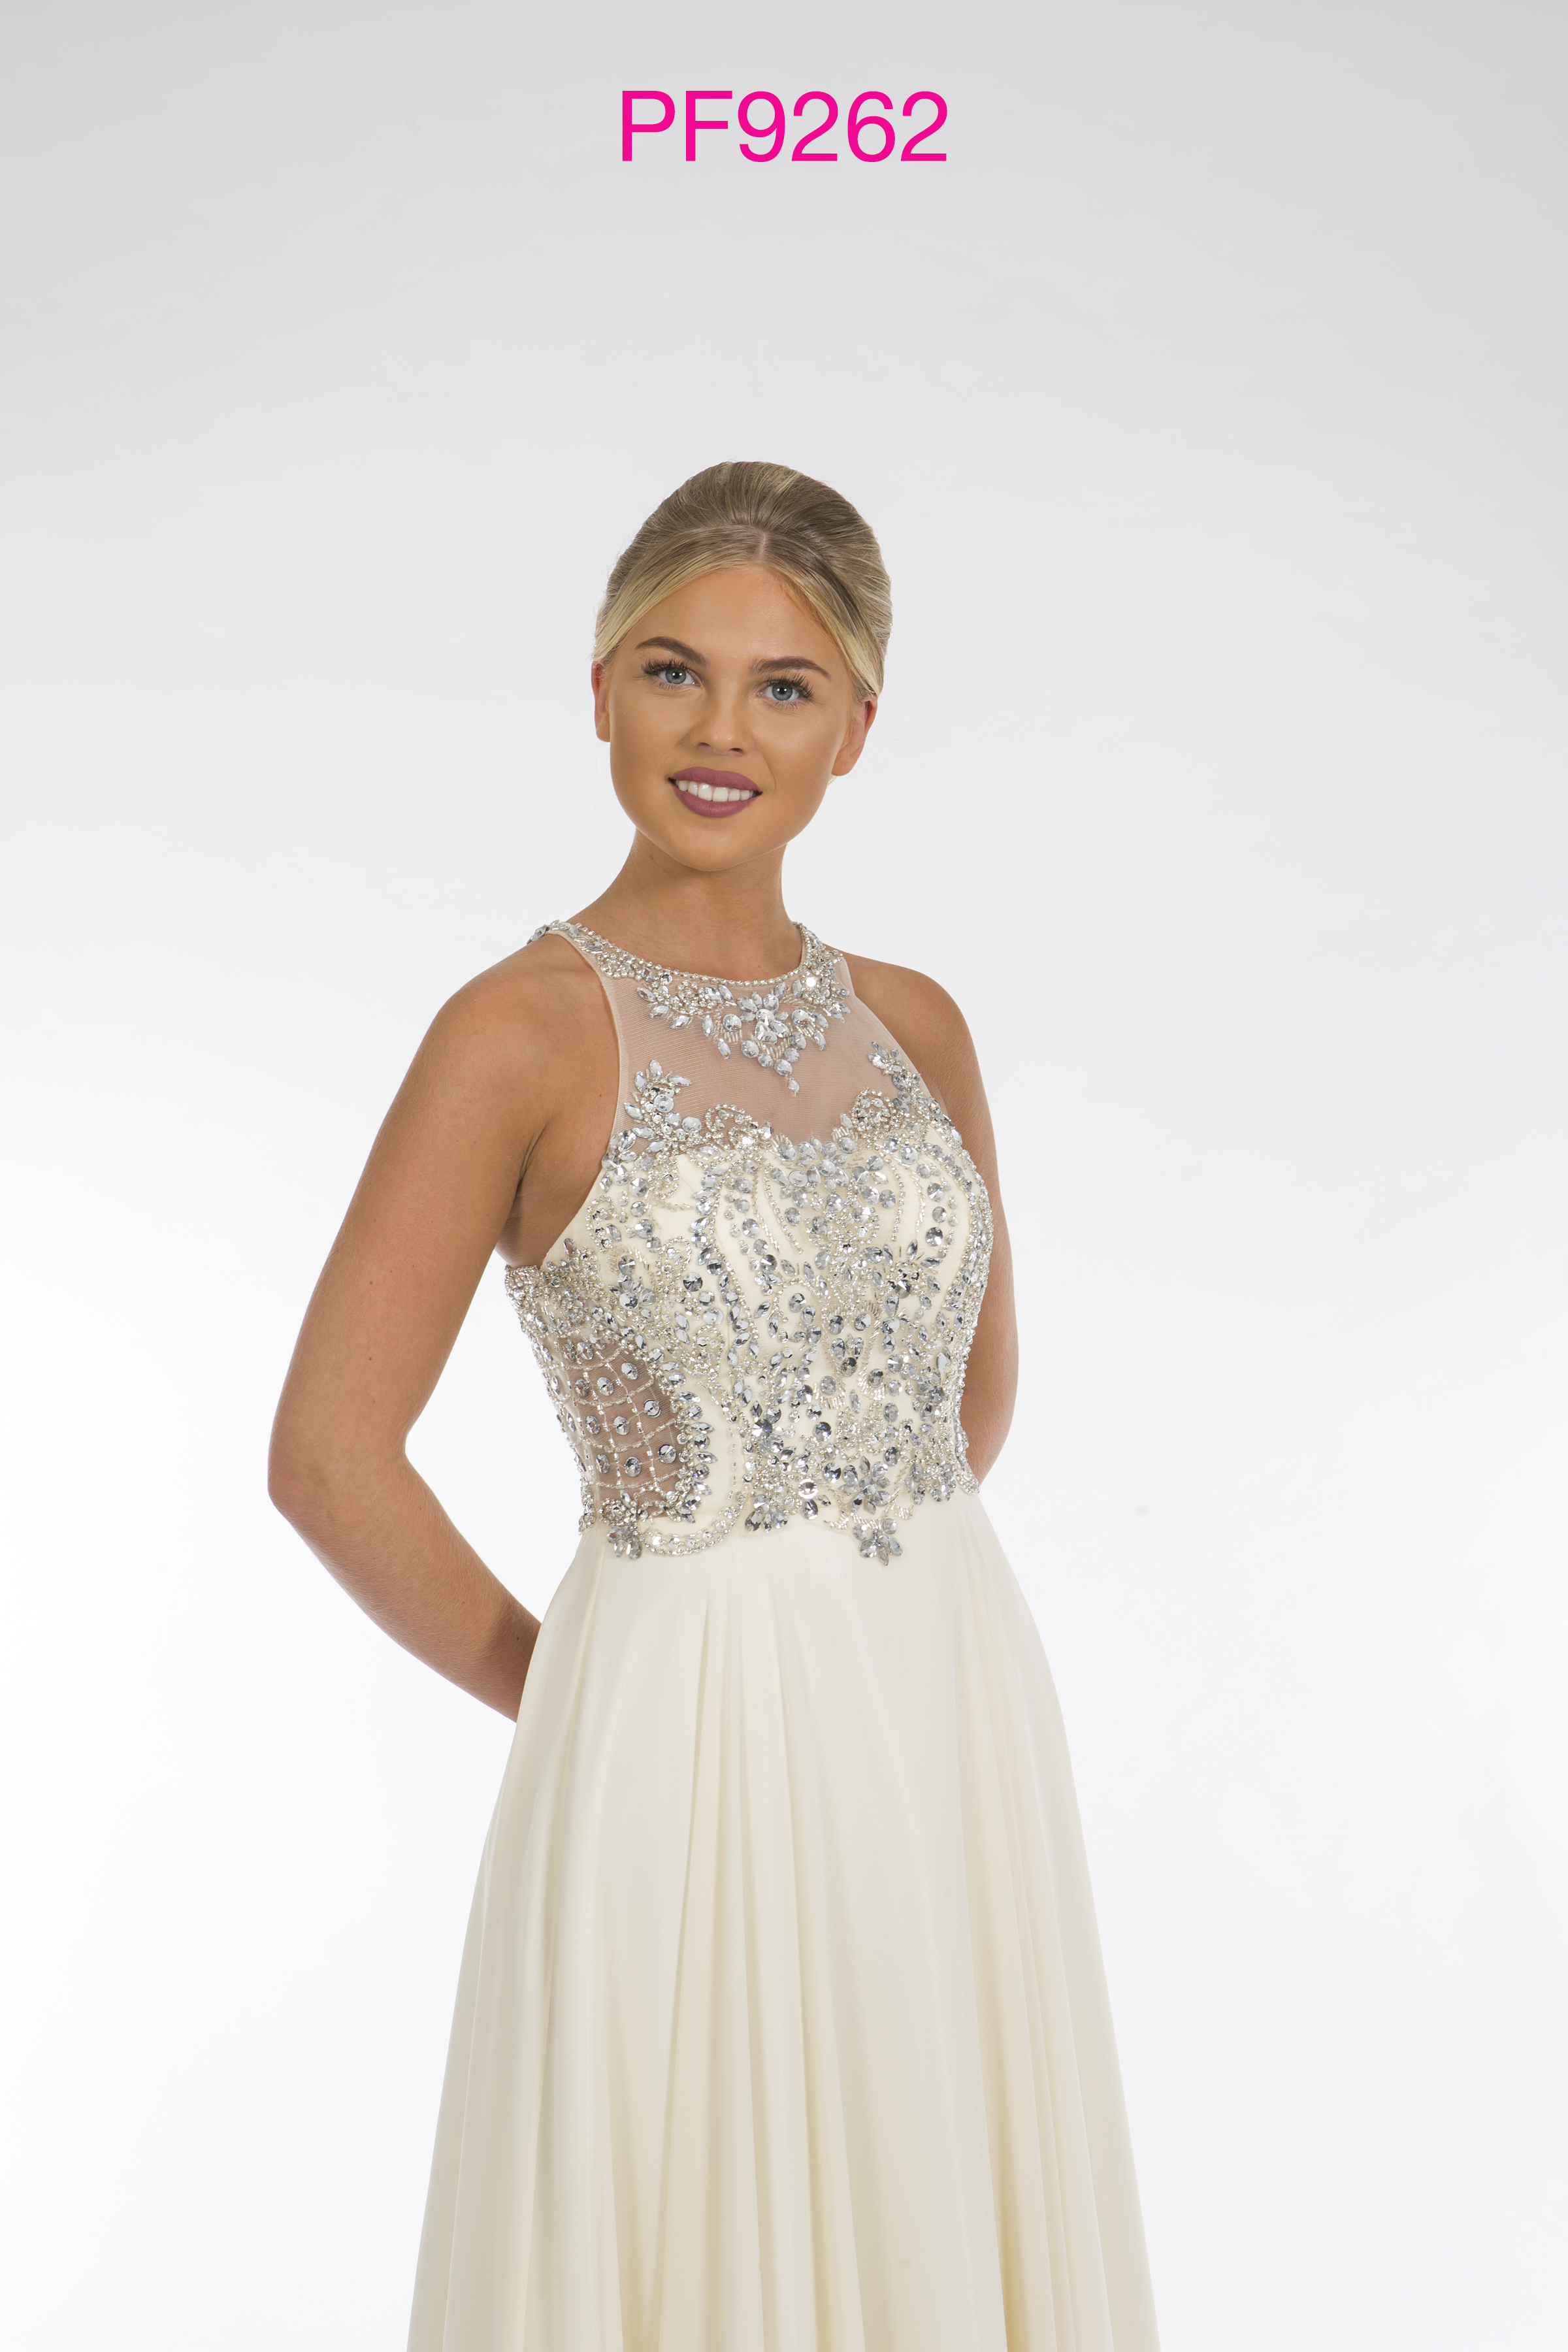 Prom Frocks PF9262 Cream Prom Dress - Prom Frocks UK Prom Dresses